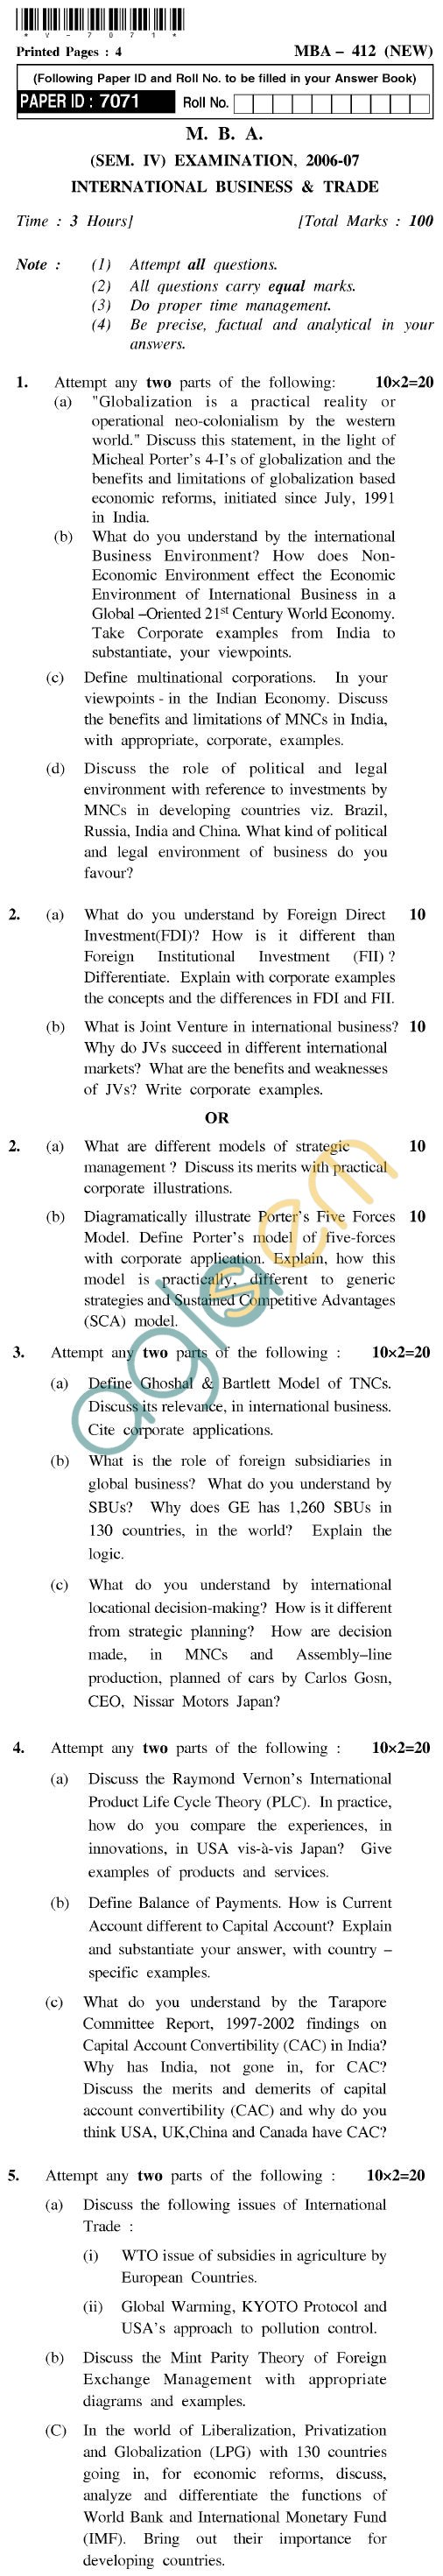 UPTU MBA Question Papers - MBA-412 (New)-International Business and Trade